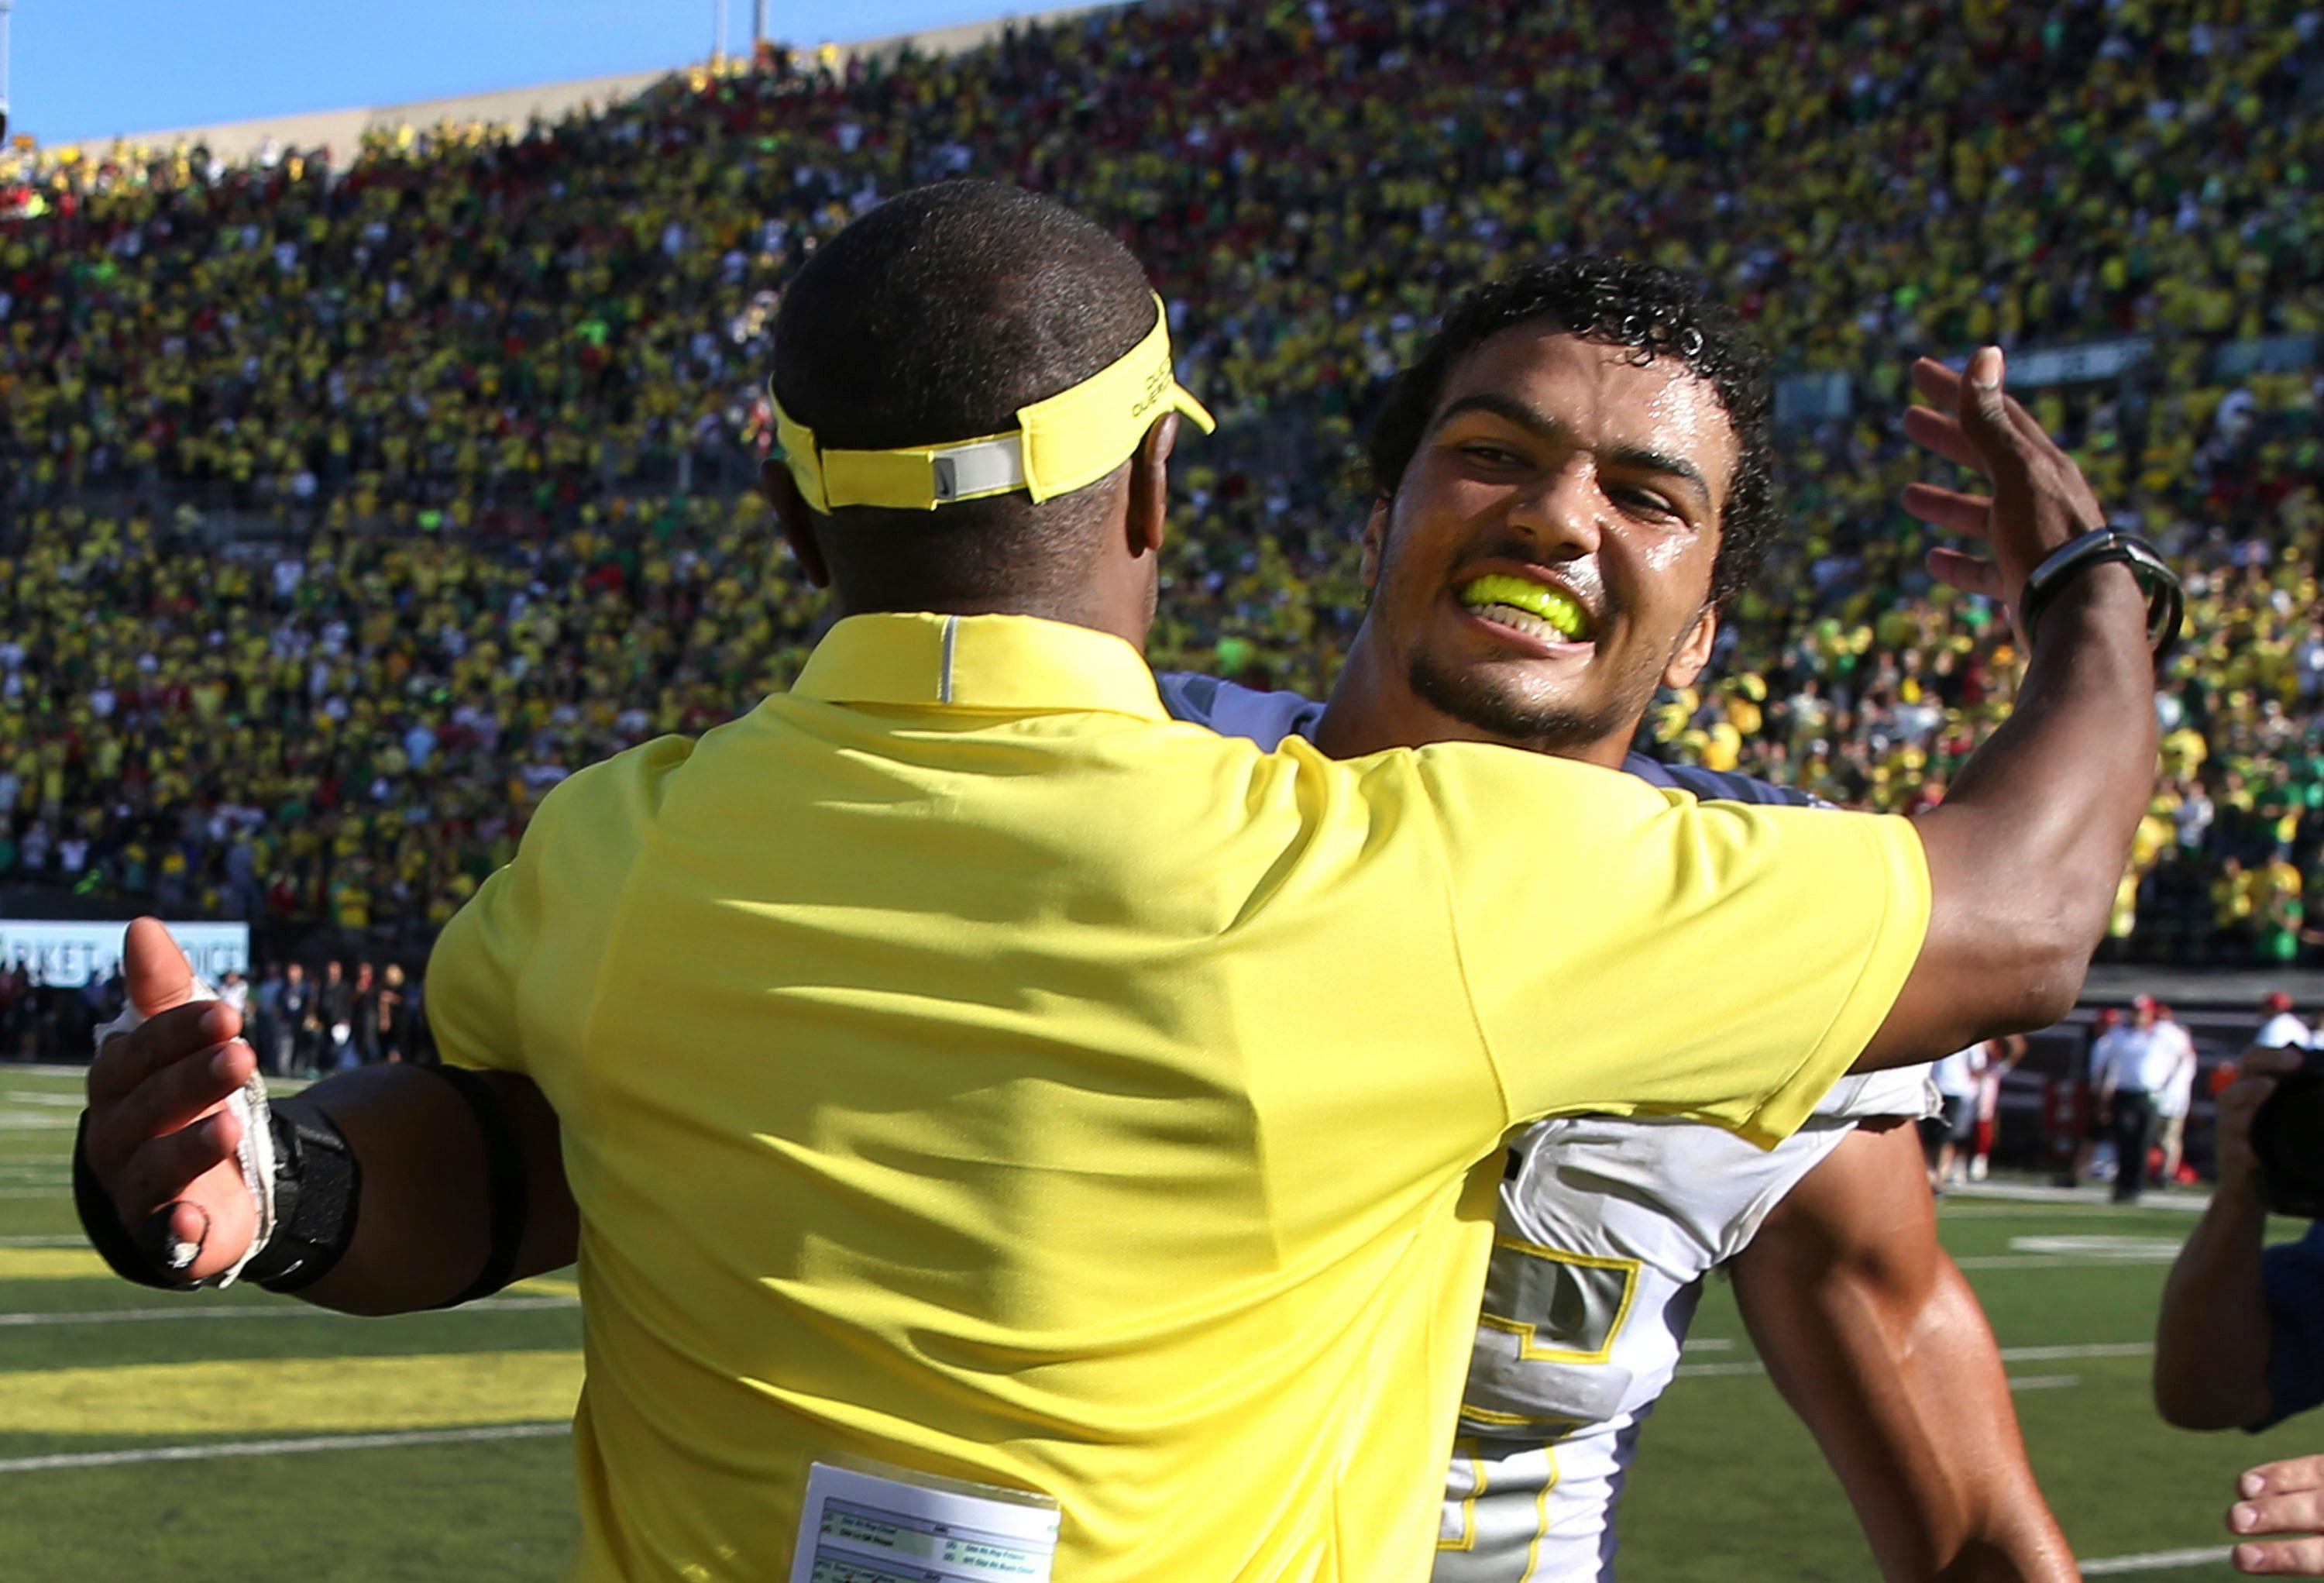 FILE - In this Sept. 9, 2017, file photo, Oregon head coach Willie Taggart and linebacker Troy Dye, rear, embrace after defeating Nebraska, 42-35, in an NCAA college football game, in Eugene, Ore. Dye was selected to the AP All-Conference Pac-12 team announced Thursday, Dec. 7, 2017. (AP Photo/Chris Pietsch, File)